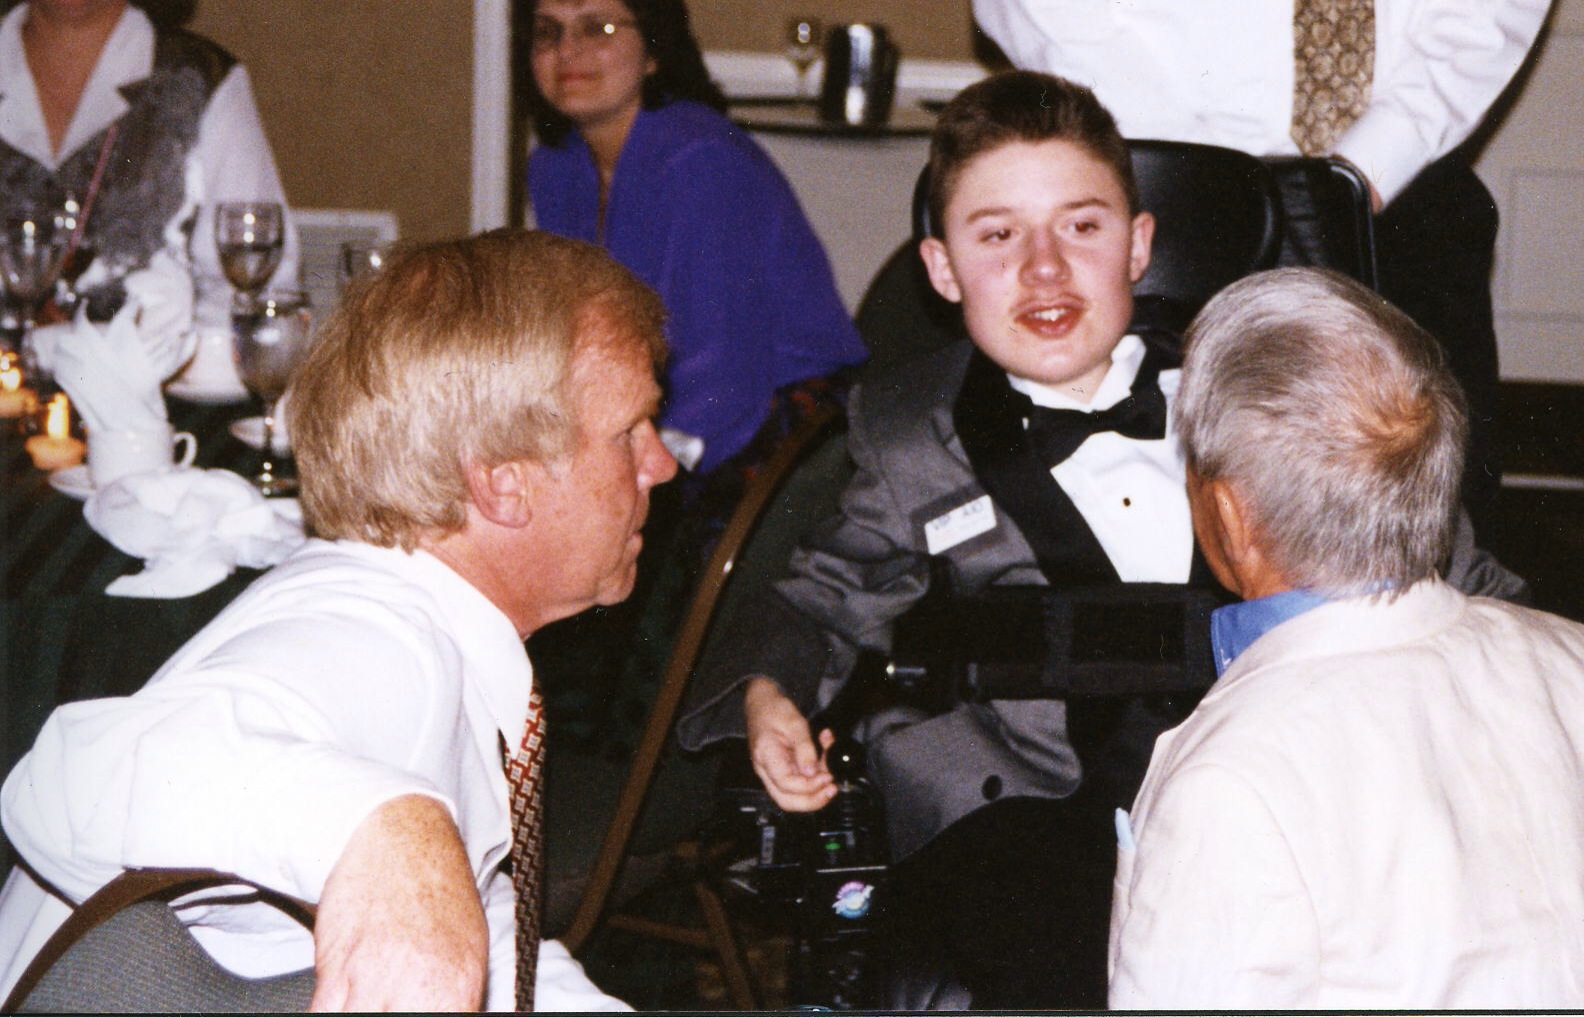 Ben with Jeremy Bulloch (left), Artoo, and Kenny Baker (right), Men Behind the Mask Dinner, 1997 Hackensack <i>Star Wars</i> convention.